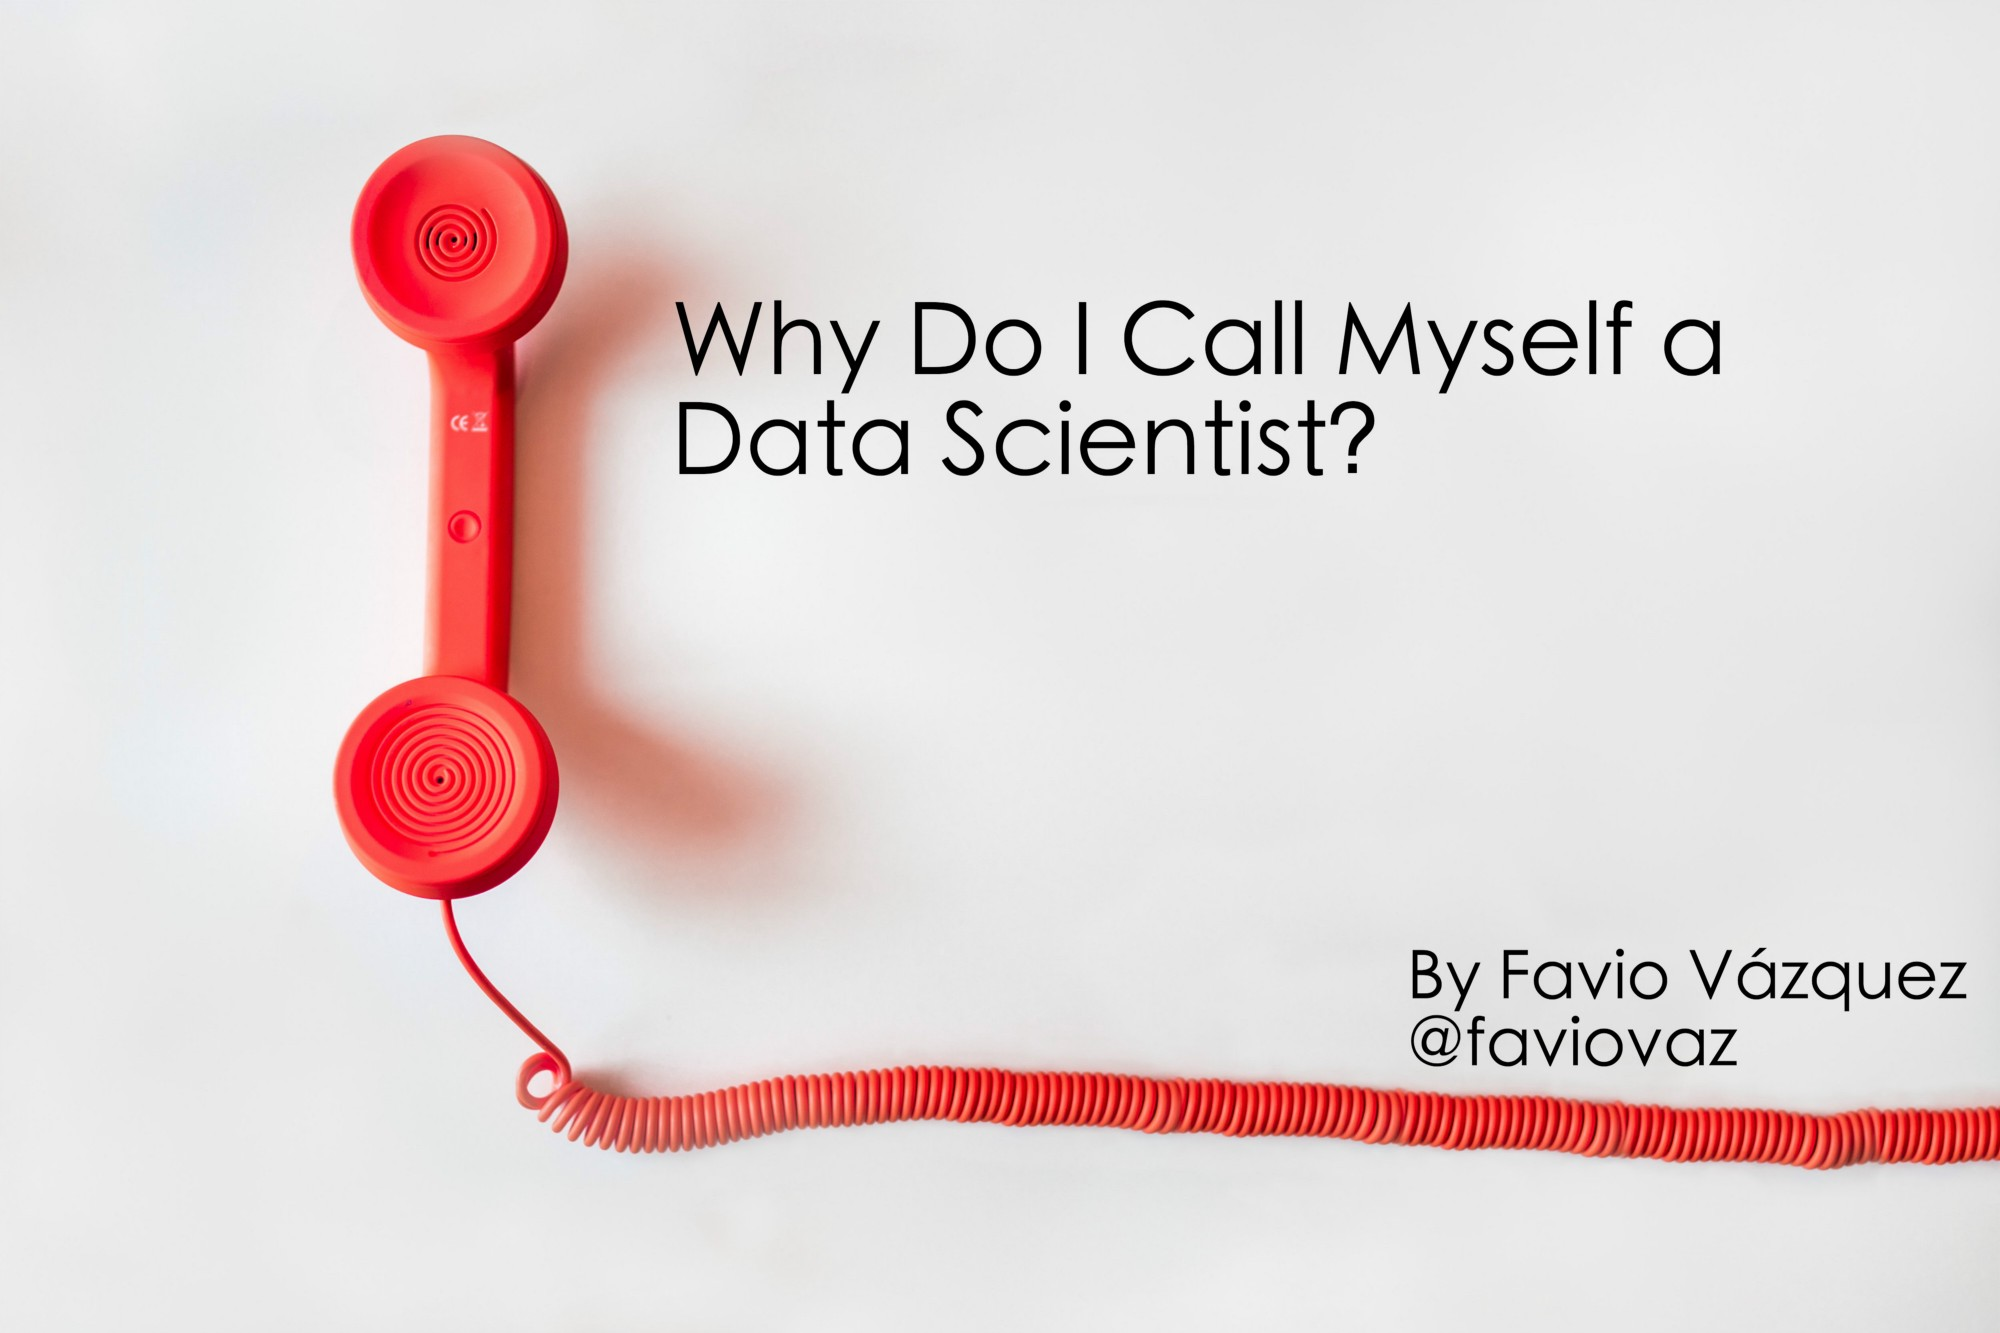 Why do I Call Myself a Data Scientist?